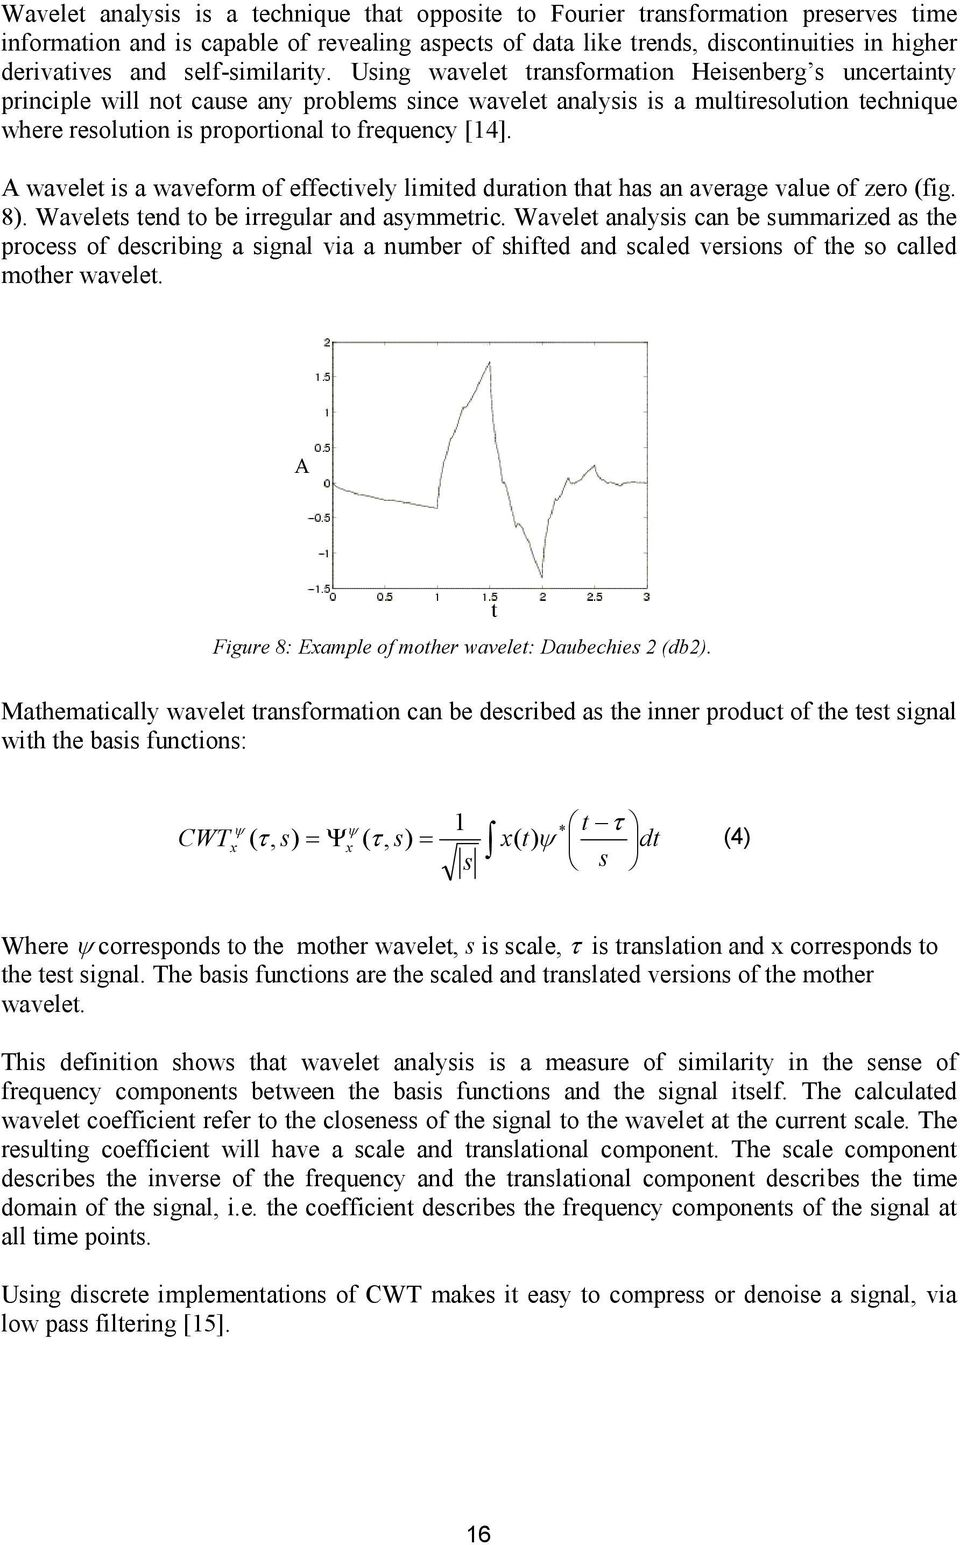 Using wavelet transformation Heisenberg s uncertainty principle will not cause any problems since wavelet analysis is a multiresolution technique where resolution is proportional to frequency [14].